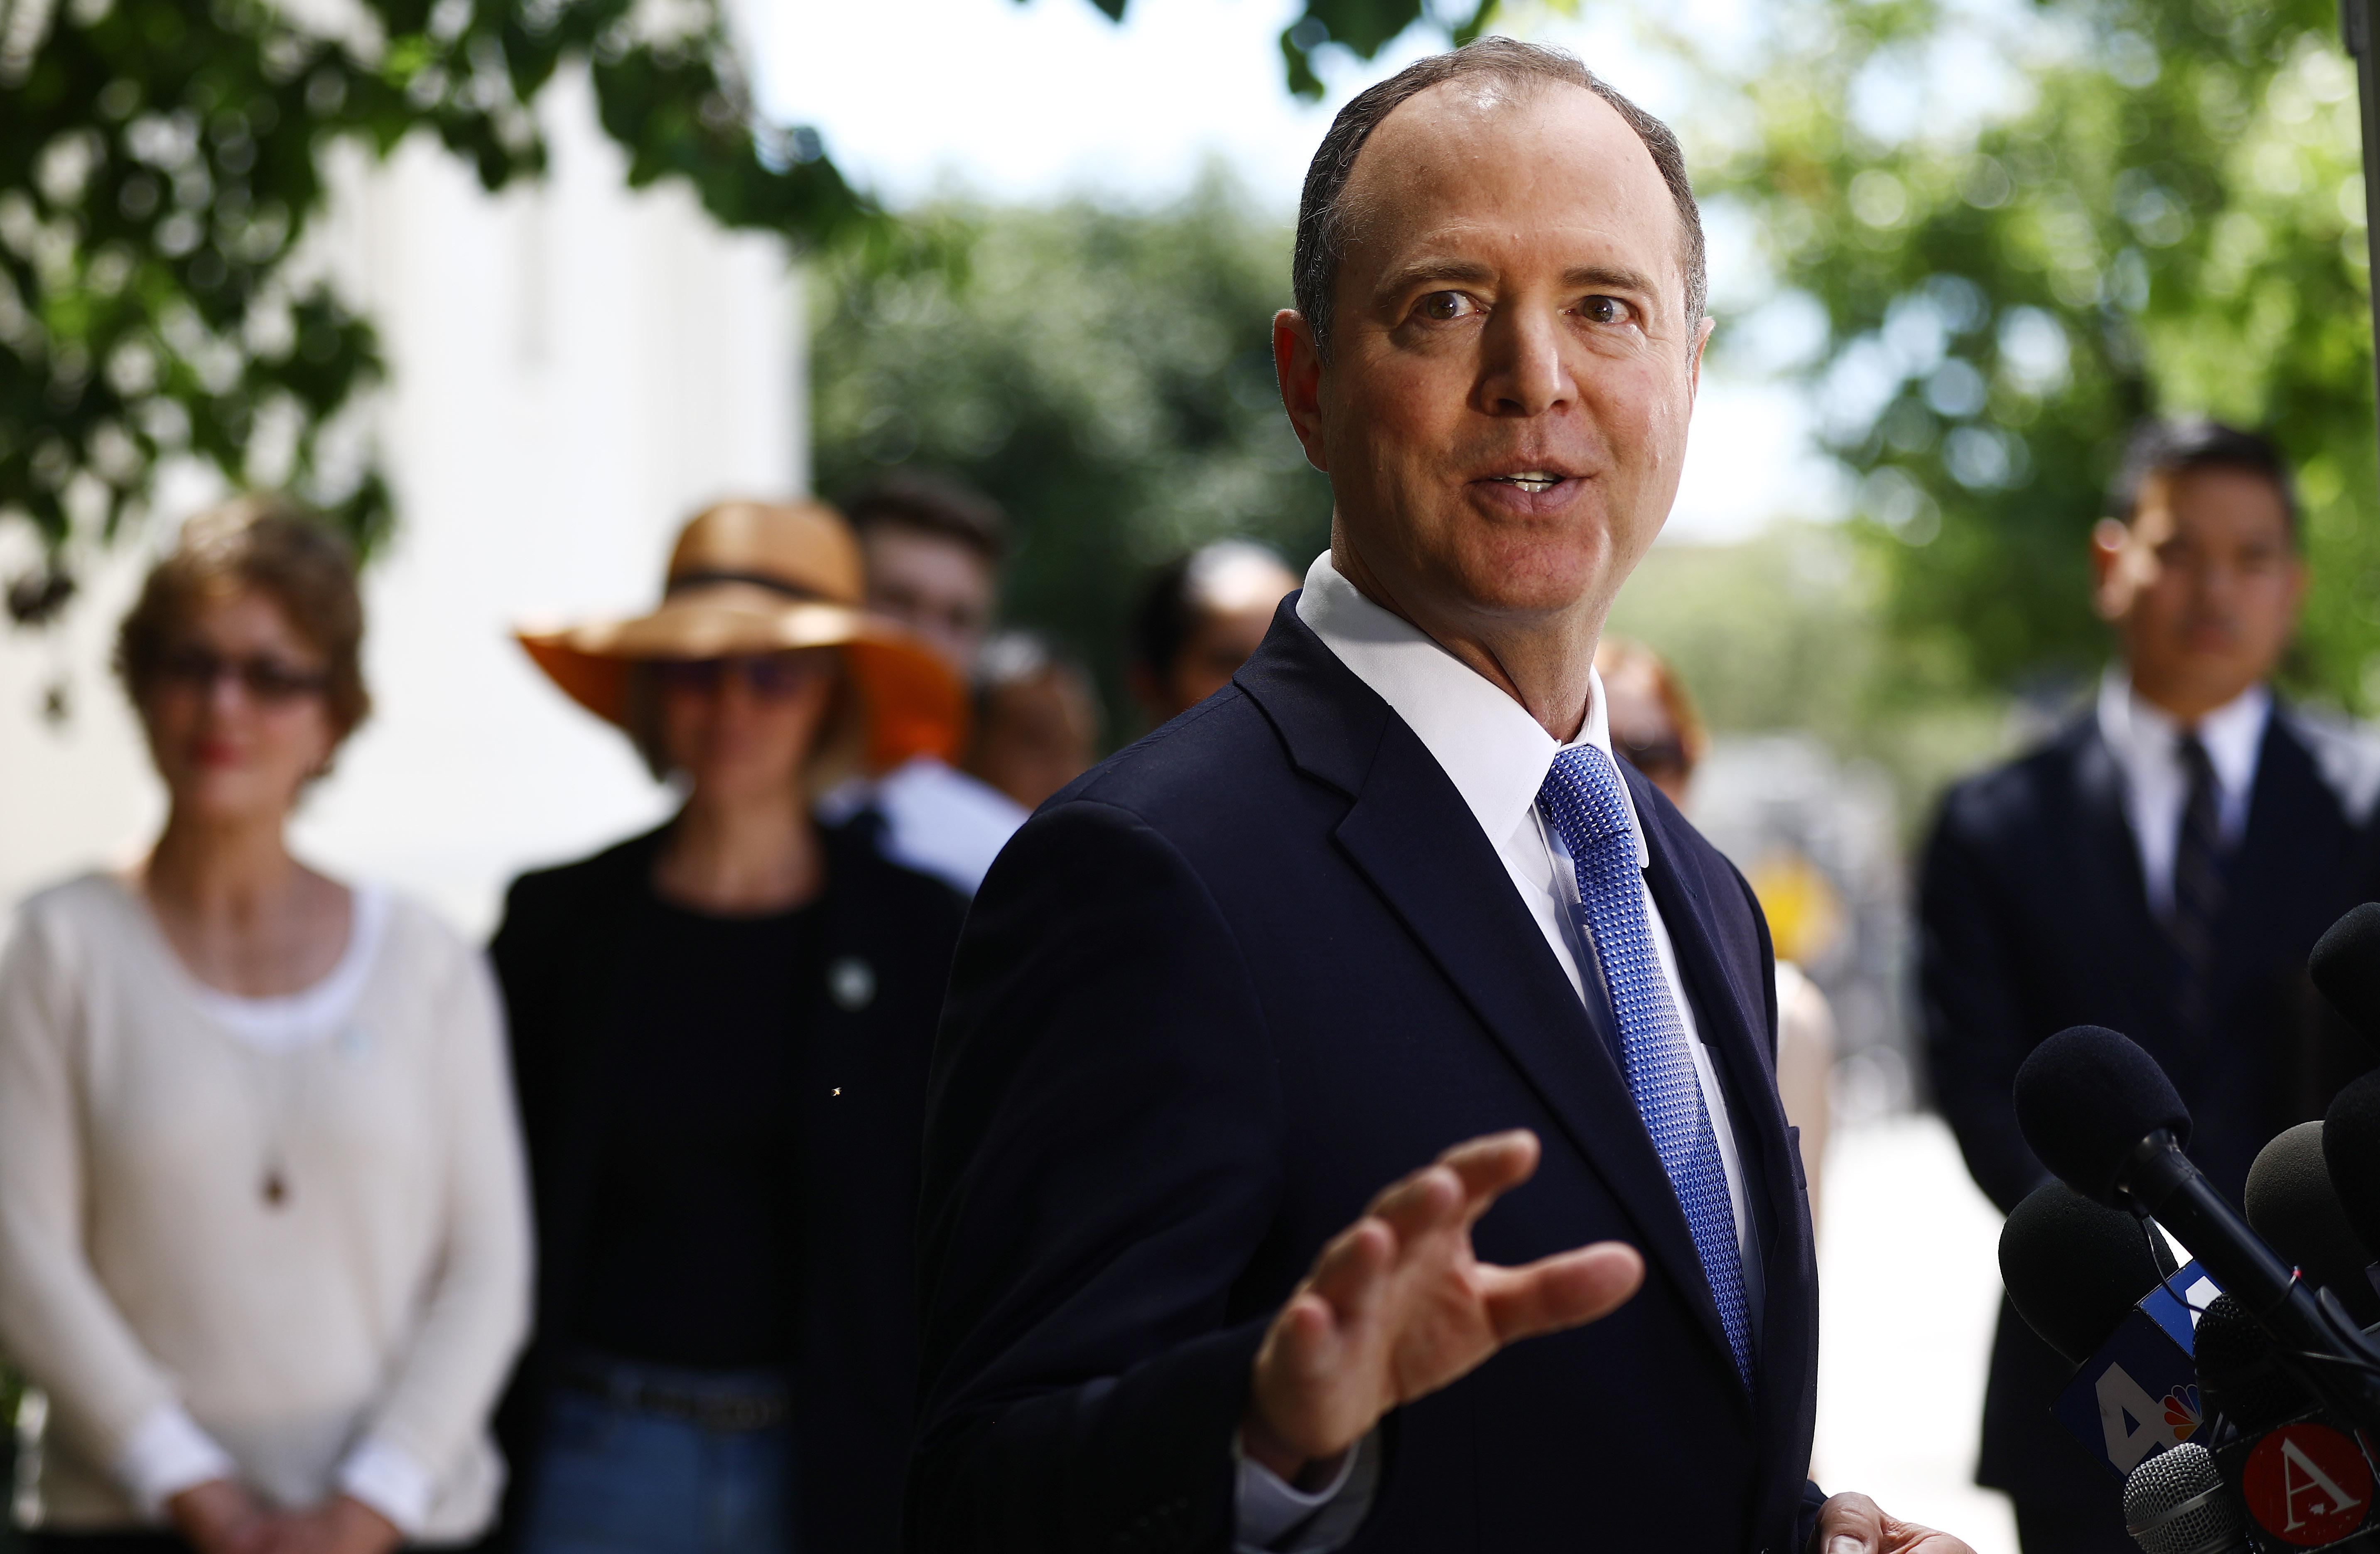 Chairman of the House Intelligence Committee Adam Schiff speaks at a press conference on April 18, 2019 in Burbank, California.